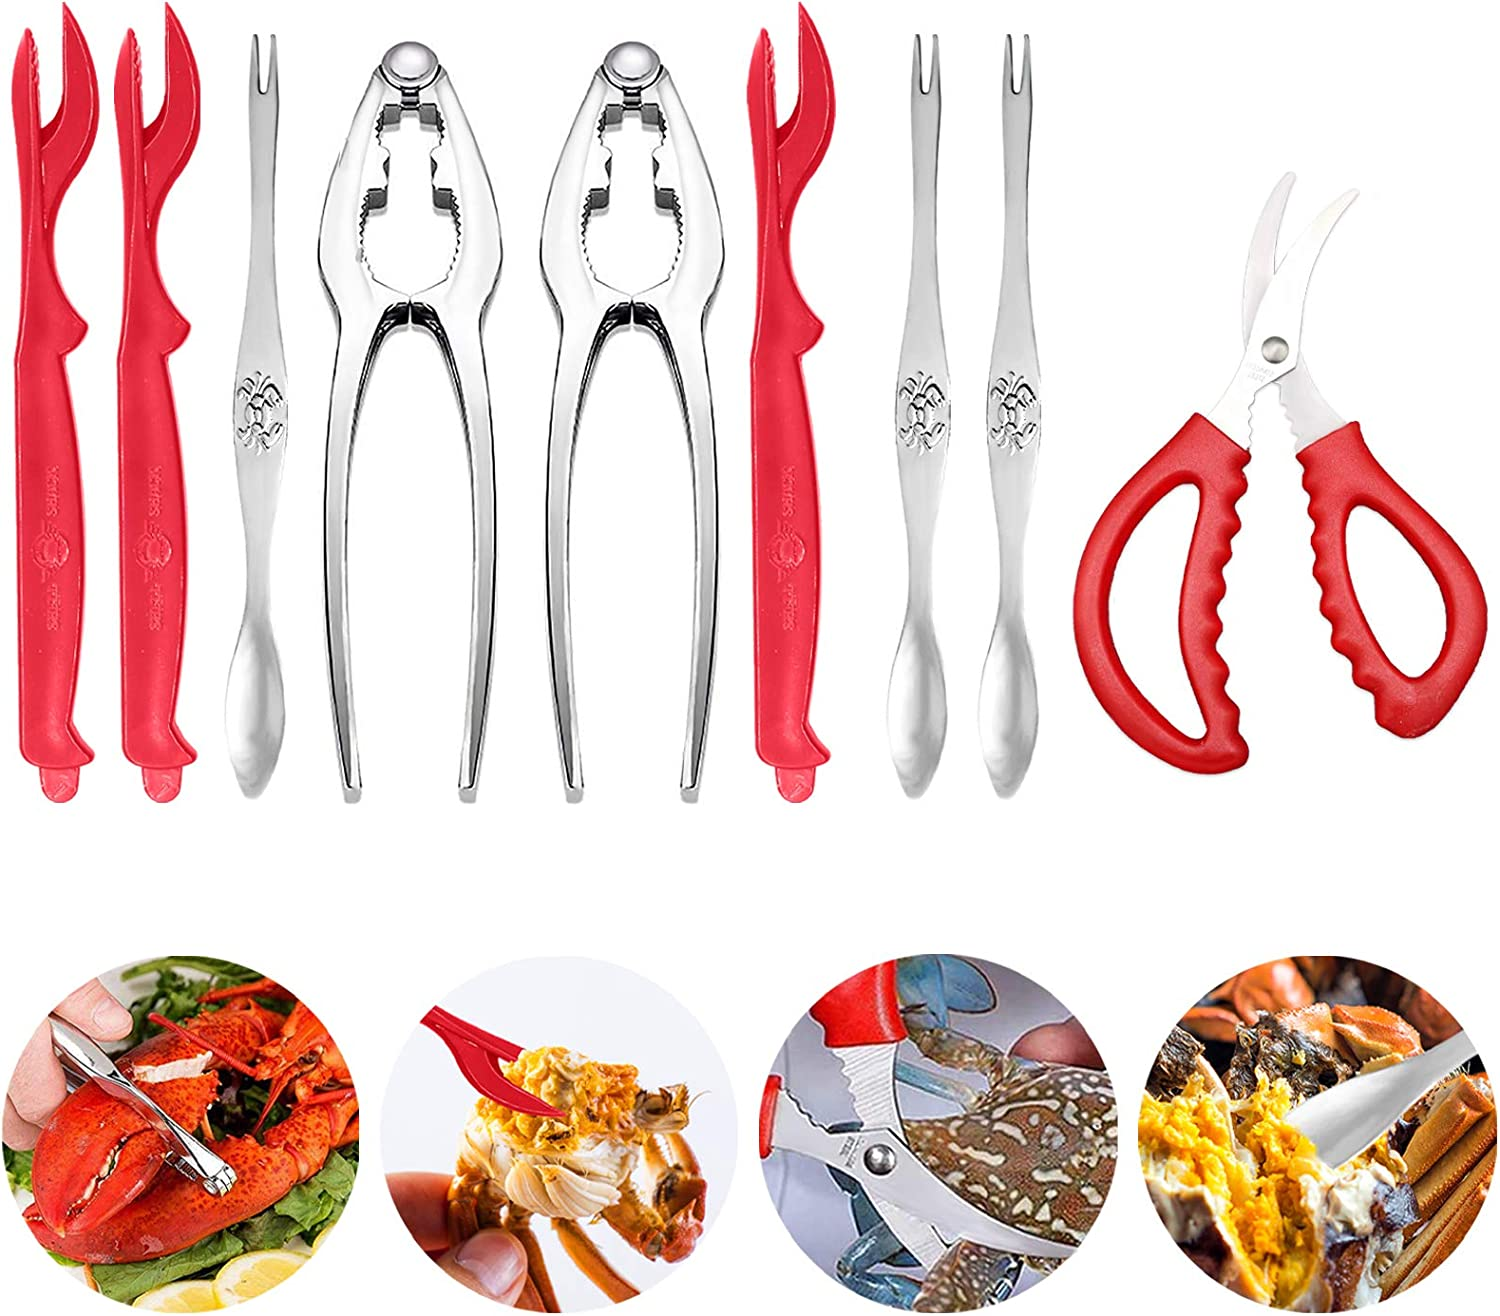 Seafood Crab Crackers and Tools- Lobster Nut Crackers and Picks Including 2 Lobster Crab Crackers 3 Lobster Shellers 3 Crab Leg Forks/Picks and 1 Seafood Scissors